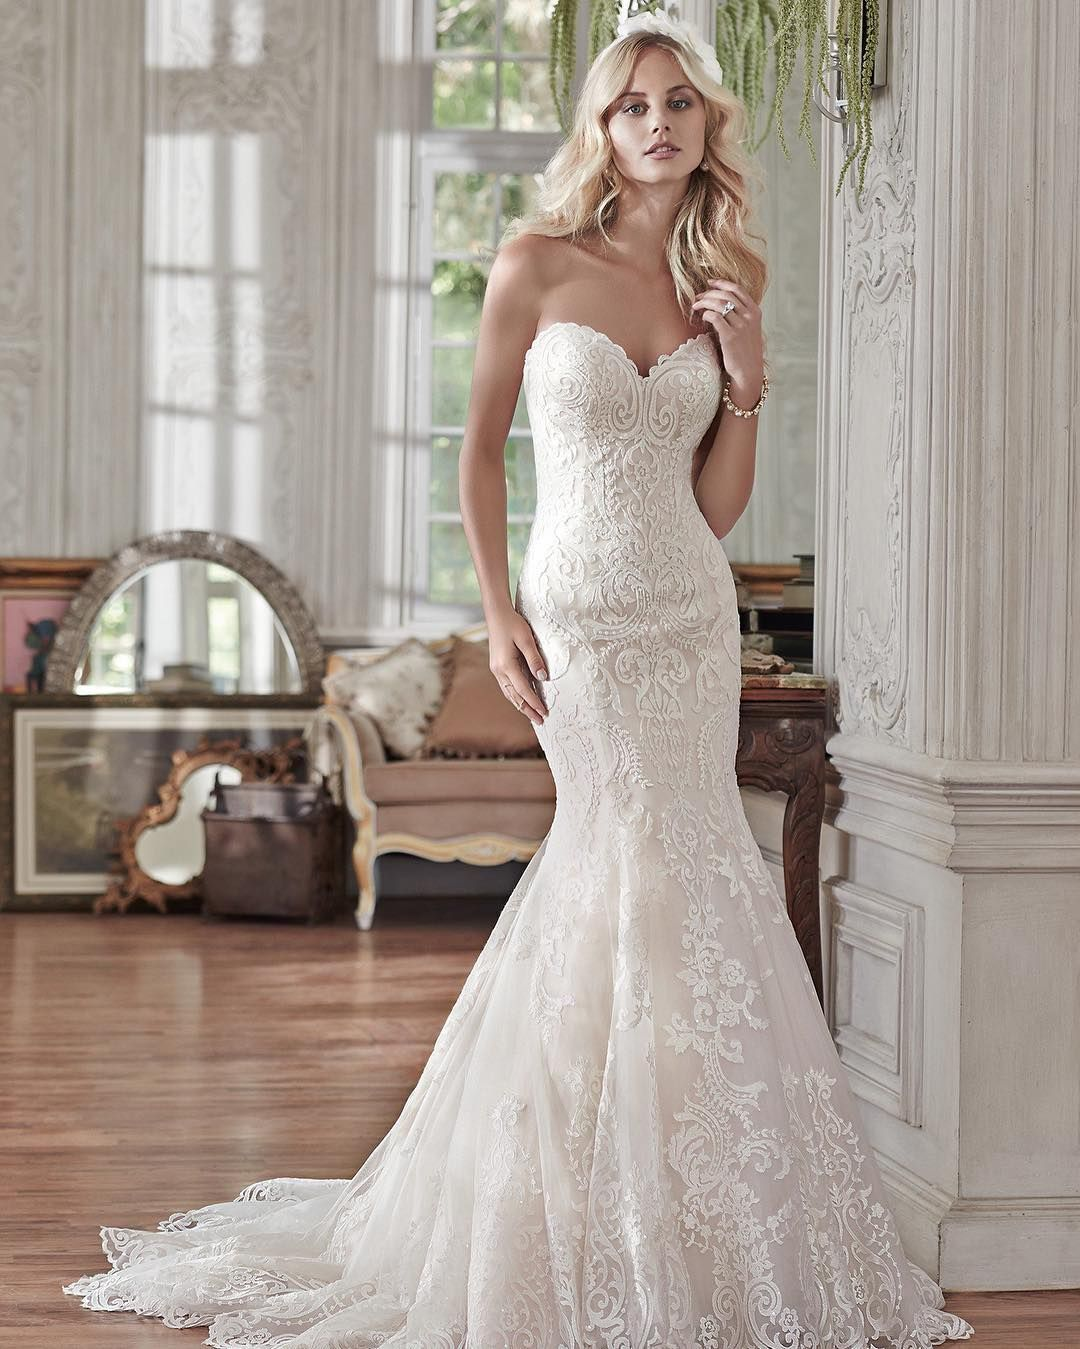 Free wedding dress catalogs  fsnewarrivals  We adore the detailing of this bold lace appliqué